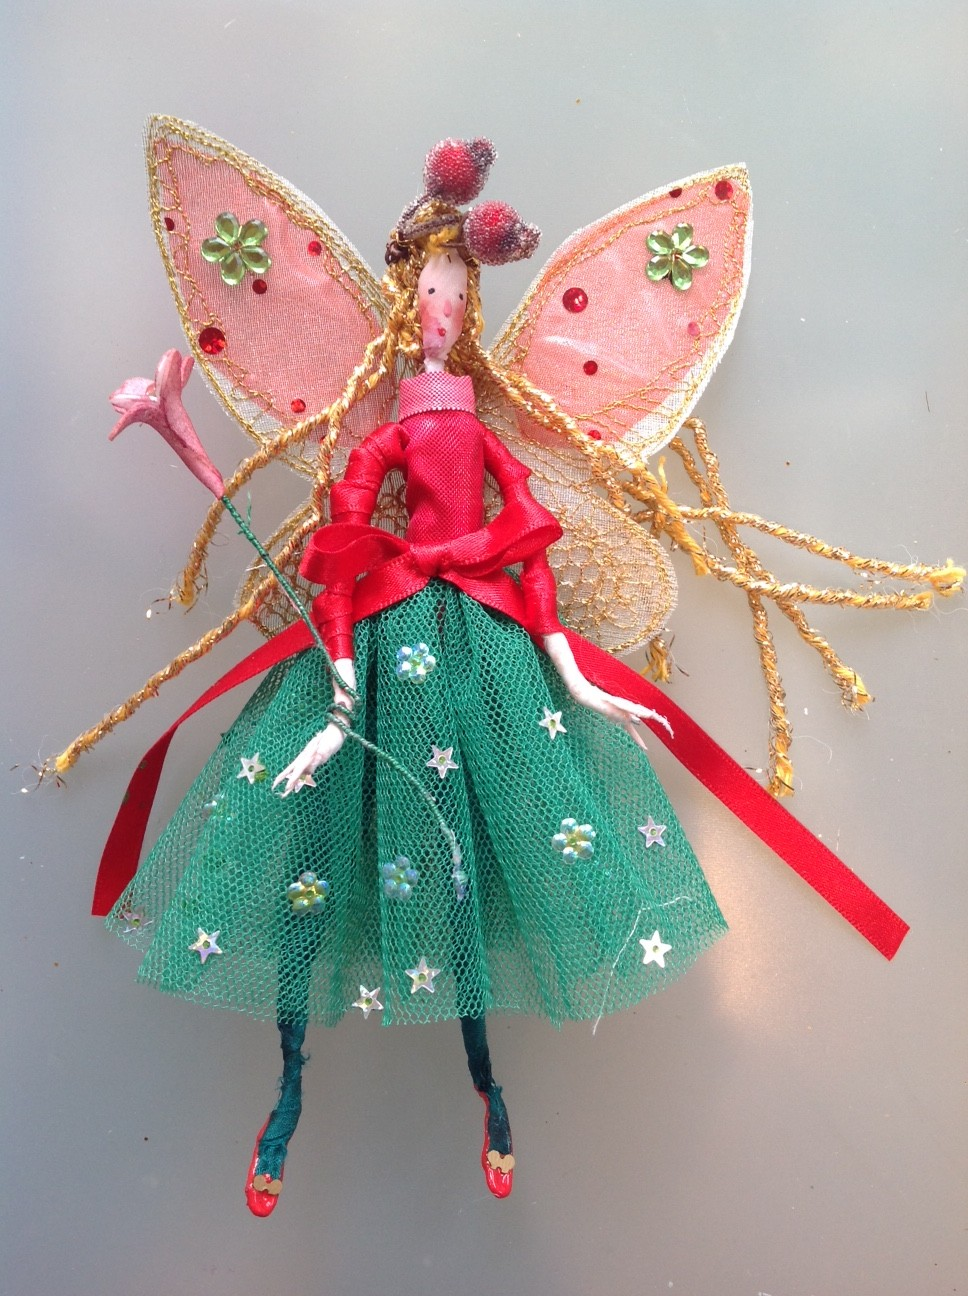 HOLLY BERRY, a 17cm fairy with a silk painted face. She is wearing a stiff net skirt with a shot metallic top and a satin ribbon at the waist. She has stiffly embroidered wings and has frosted berries in her hair. She comes in an organza bag with dried petals and a hand painted name tag. £25 plus £2 postage.